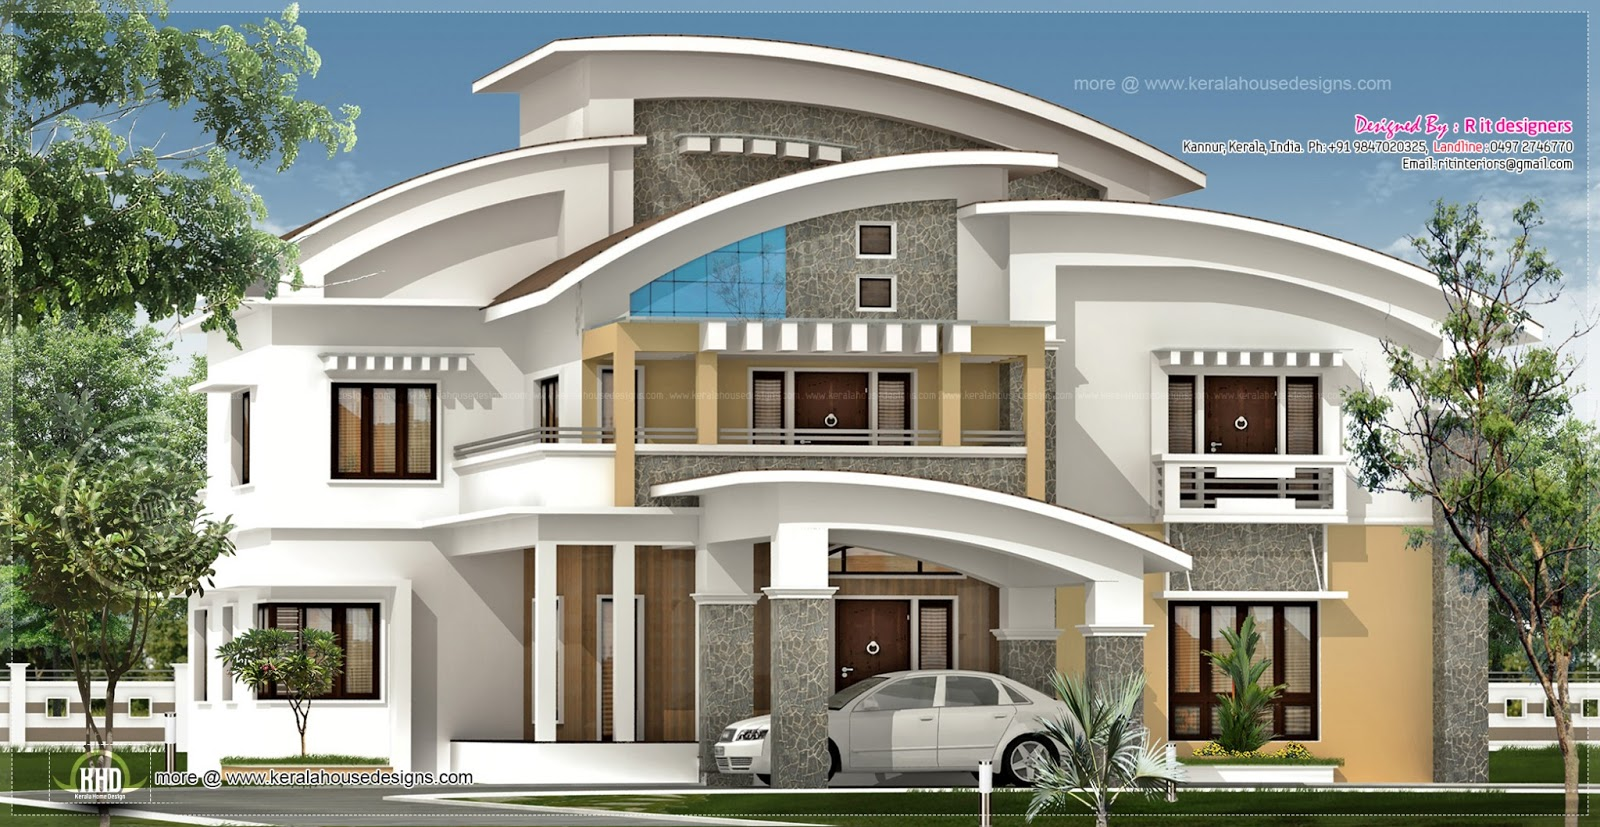 3750 square feet luxury villa exterior house design plans for Design for house